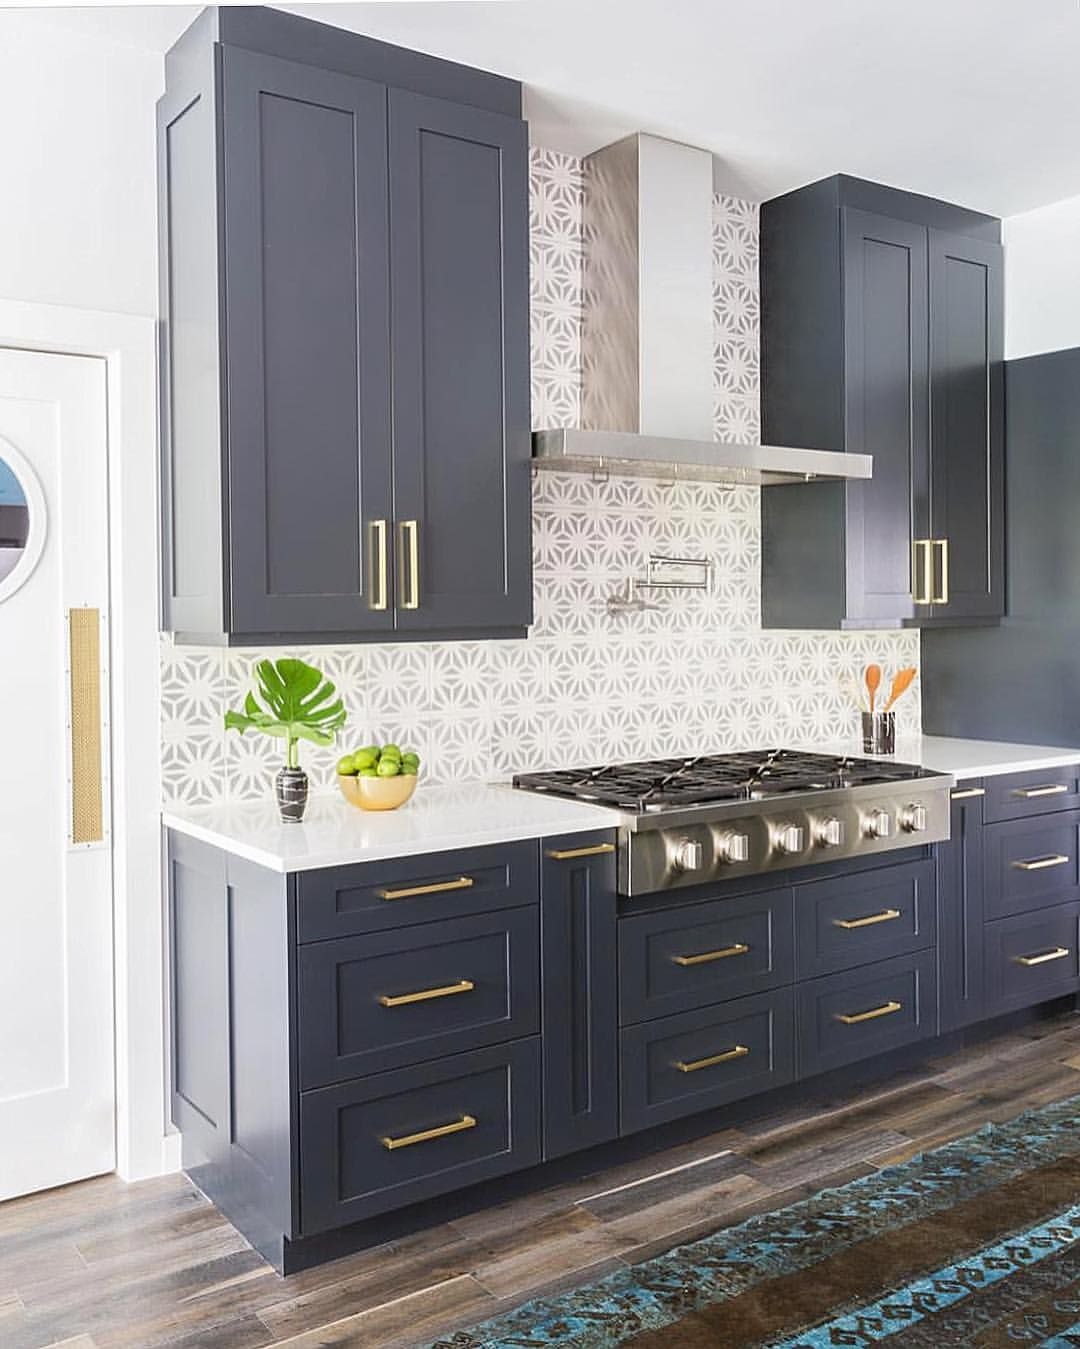 navy blue cabinets stone textiles kitchen kitchen. Black Bedroom Furniture Sets. Home Design Ideas